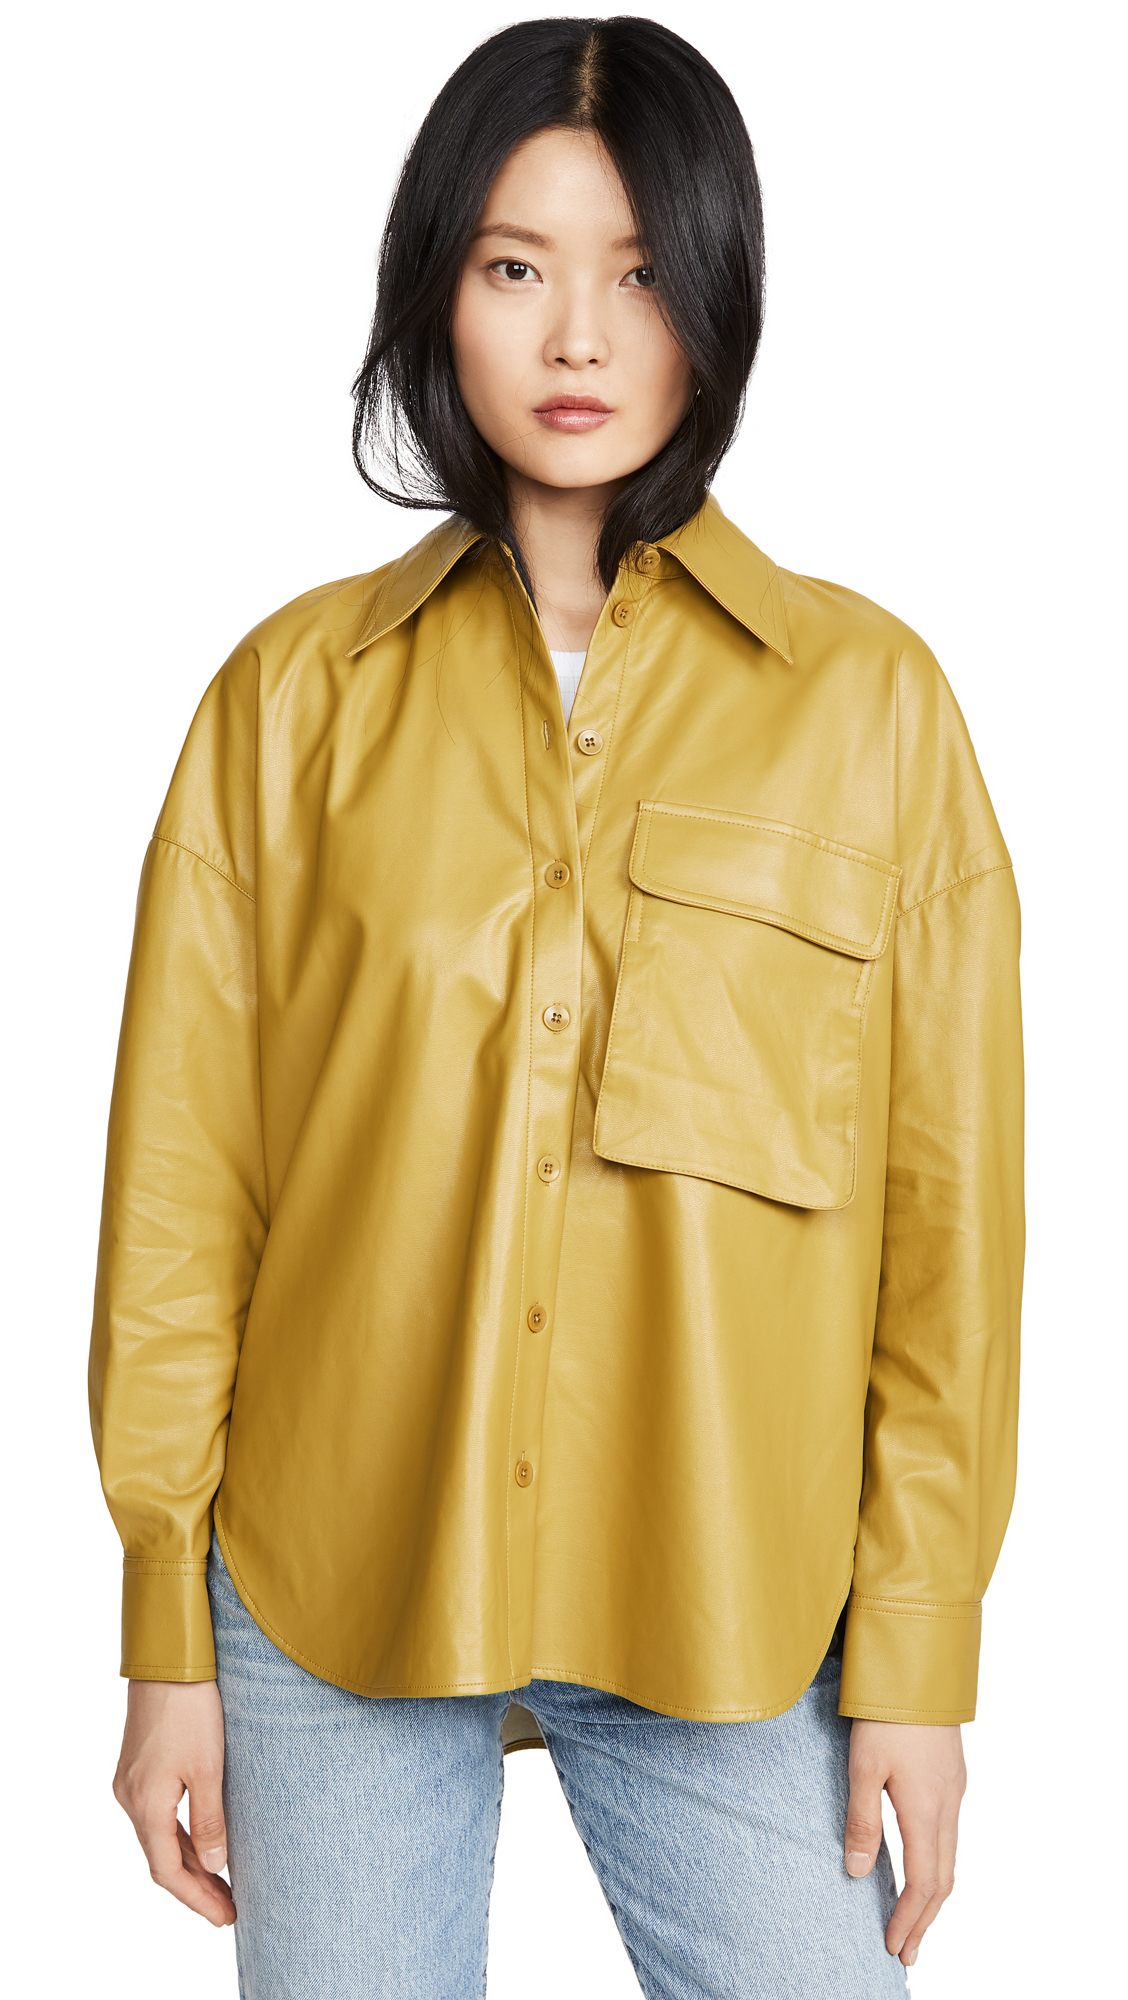 Tibi Relaxed Faux Leather Utility Shirt – 30% Off Sale